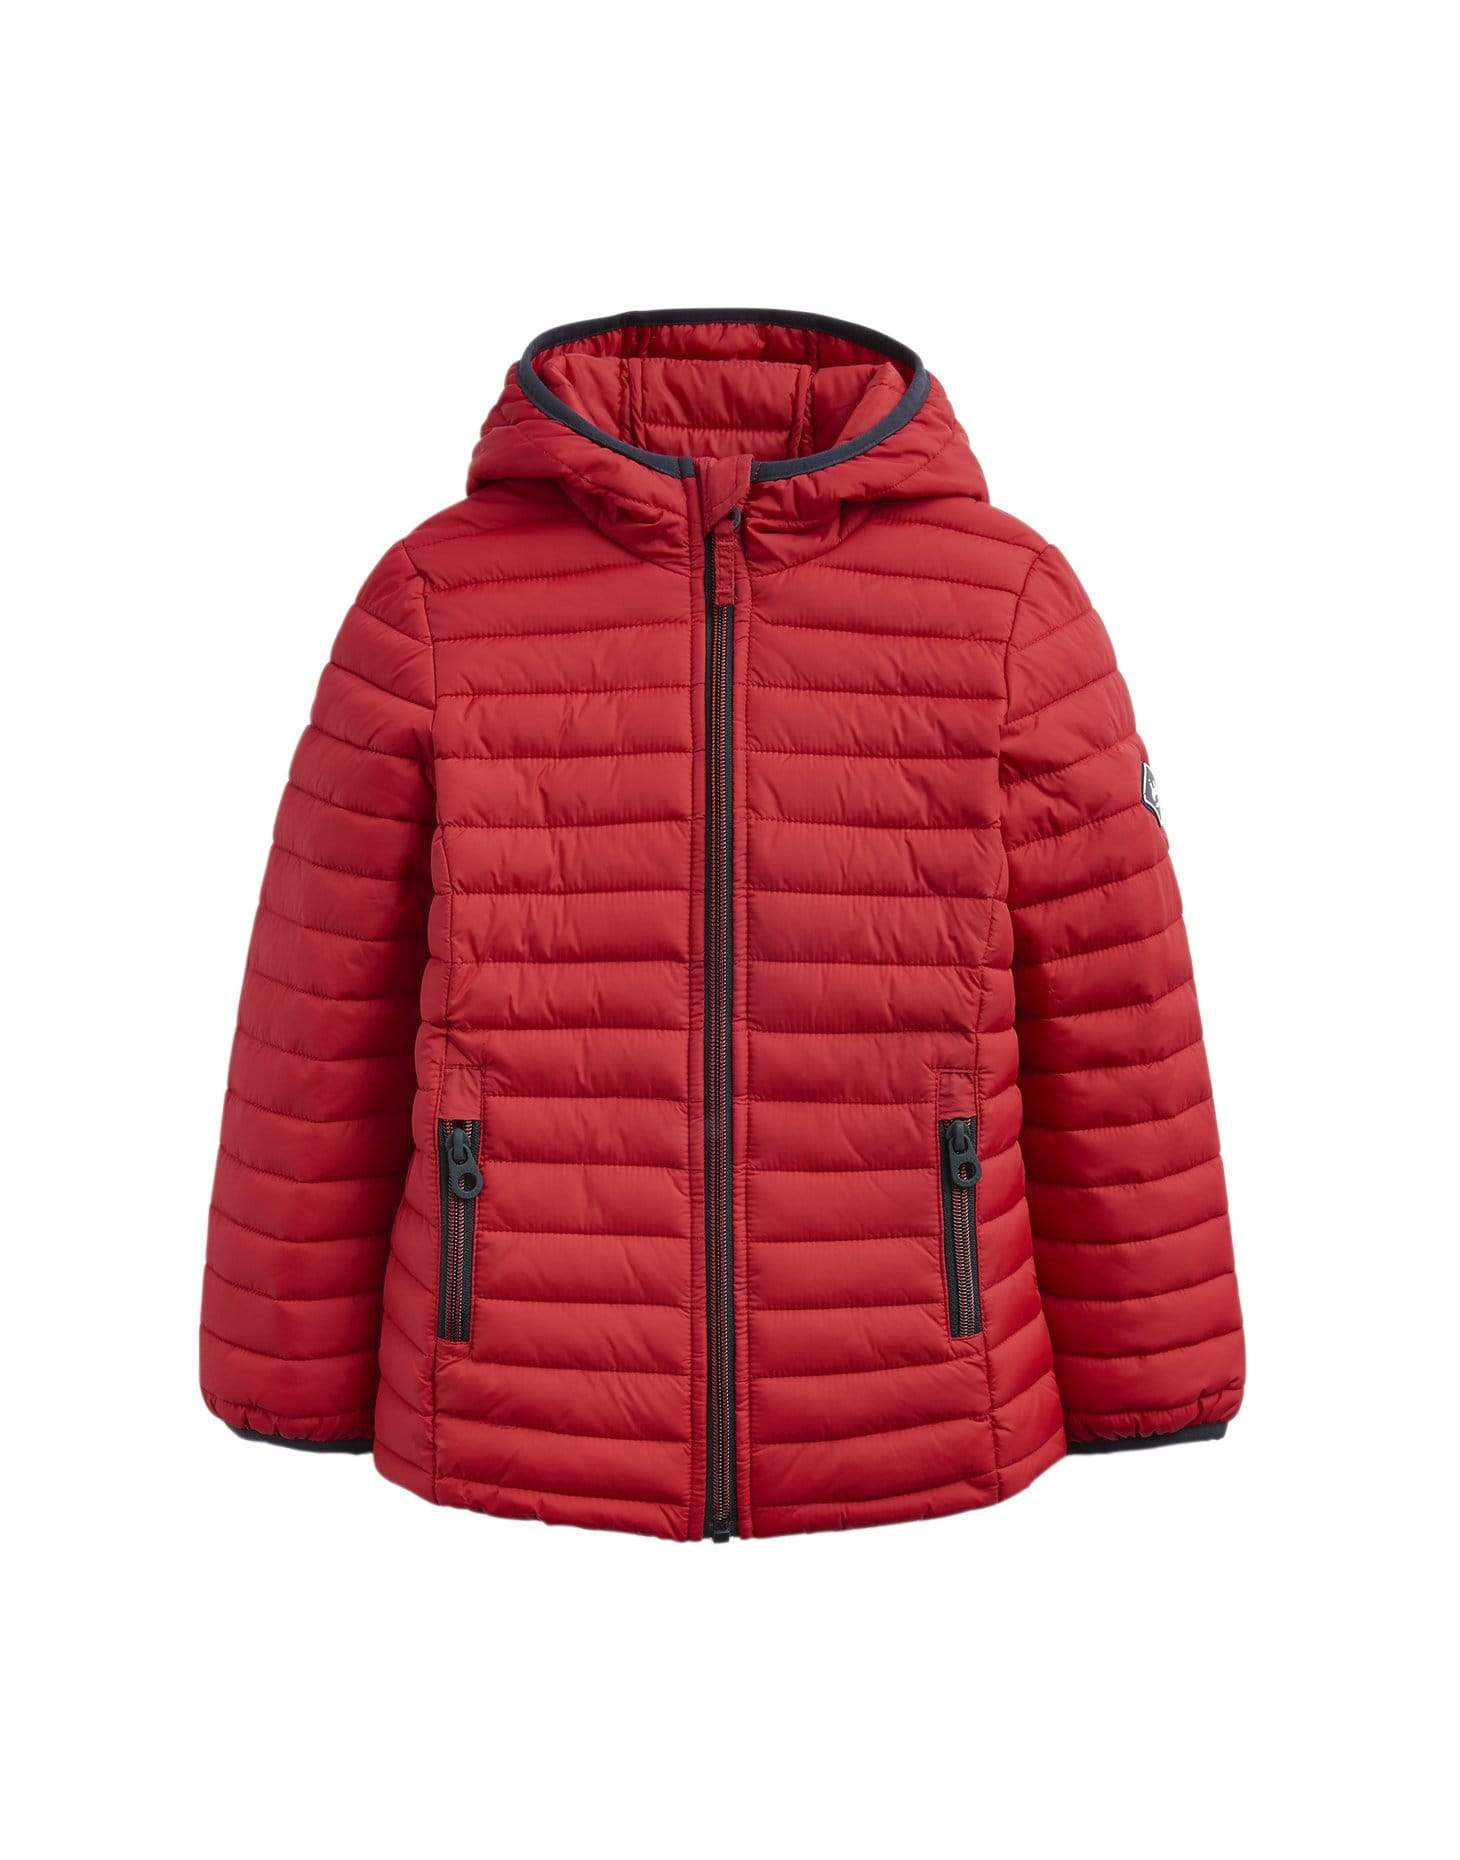 Joules Manteaux Doudoune rouge mi-saison Mid-season puffy red jacket